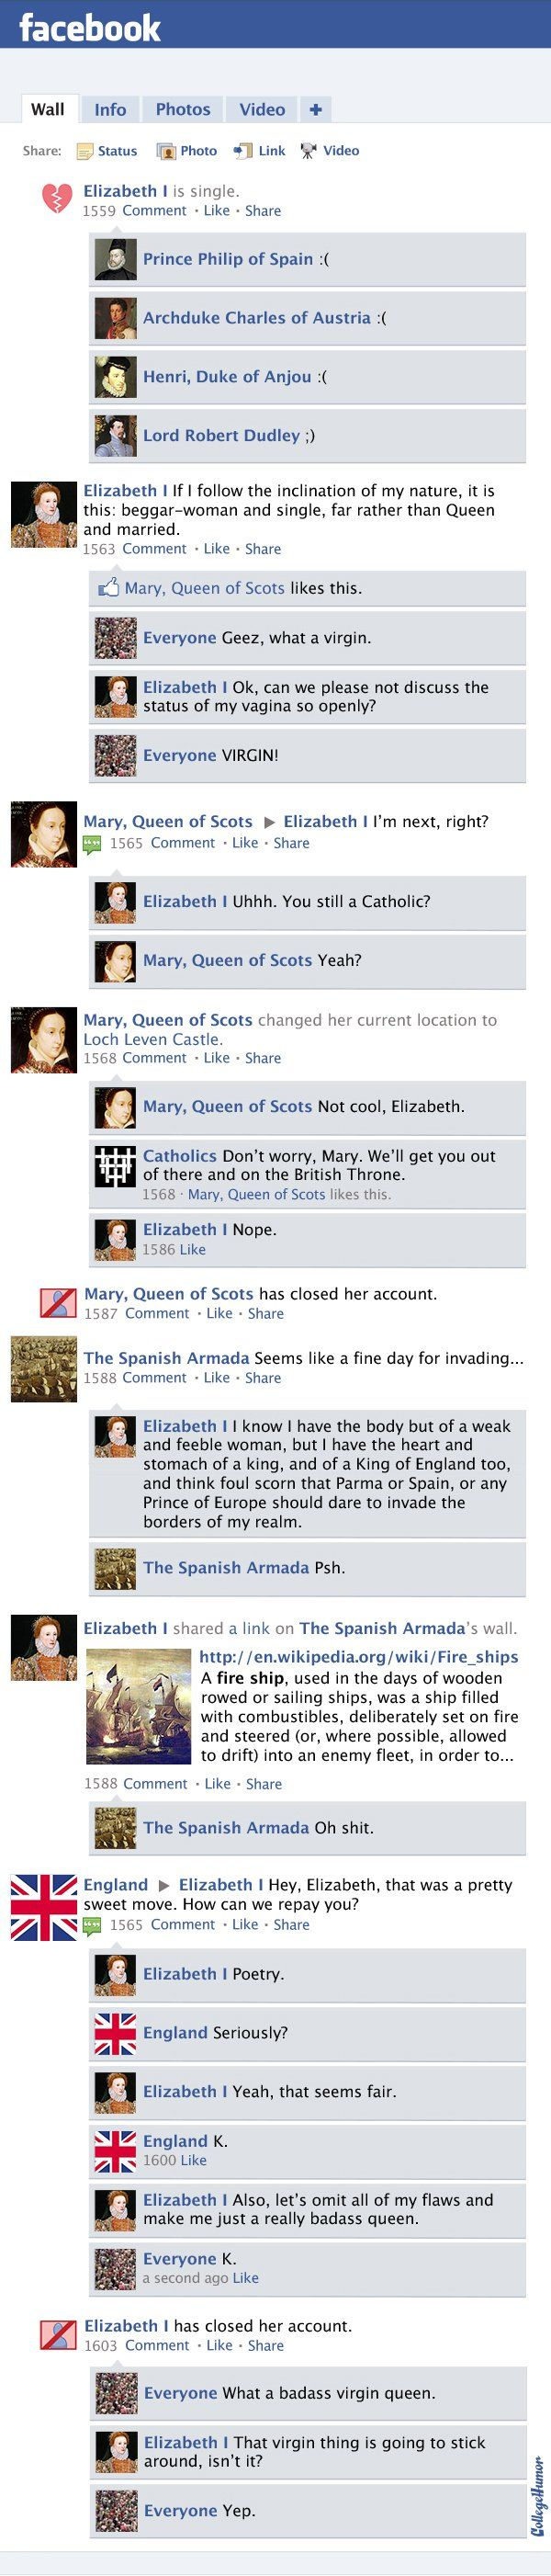 Facebook News Feed History of the World: Protestant Reformation Through Queen Elizabeth I (Page 4) - CollegeHumor Post